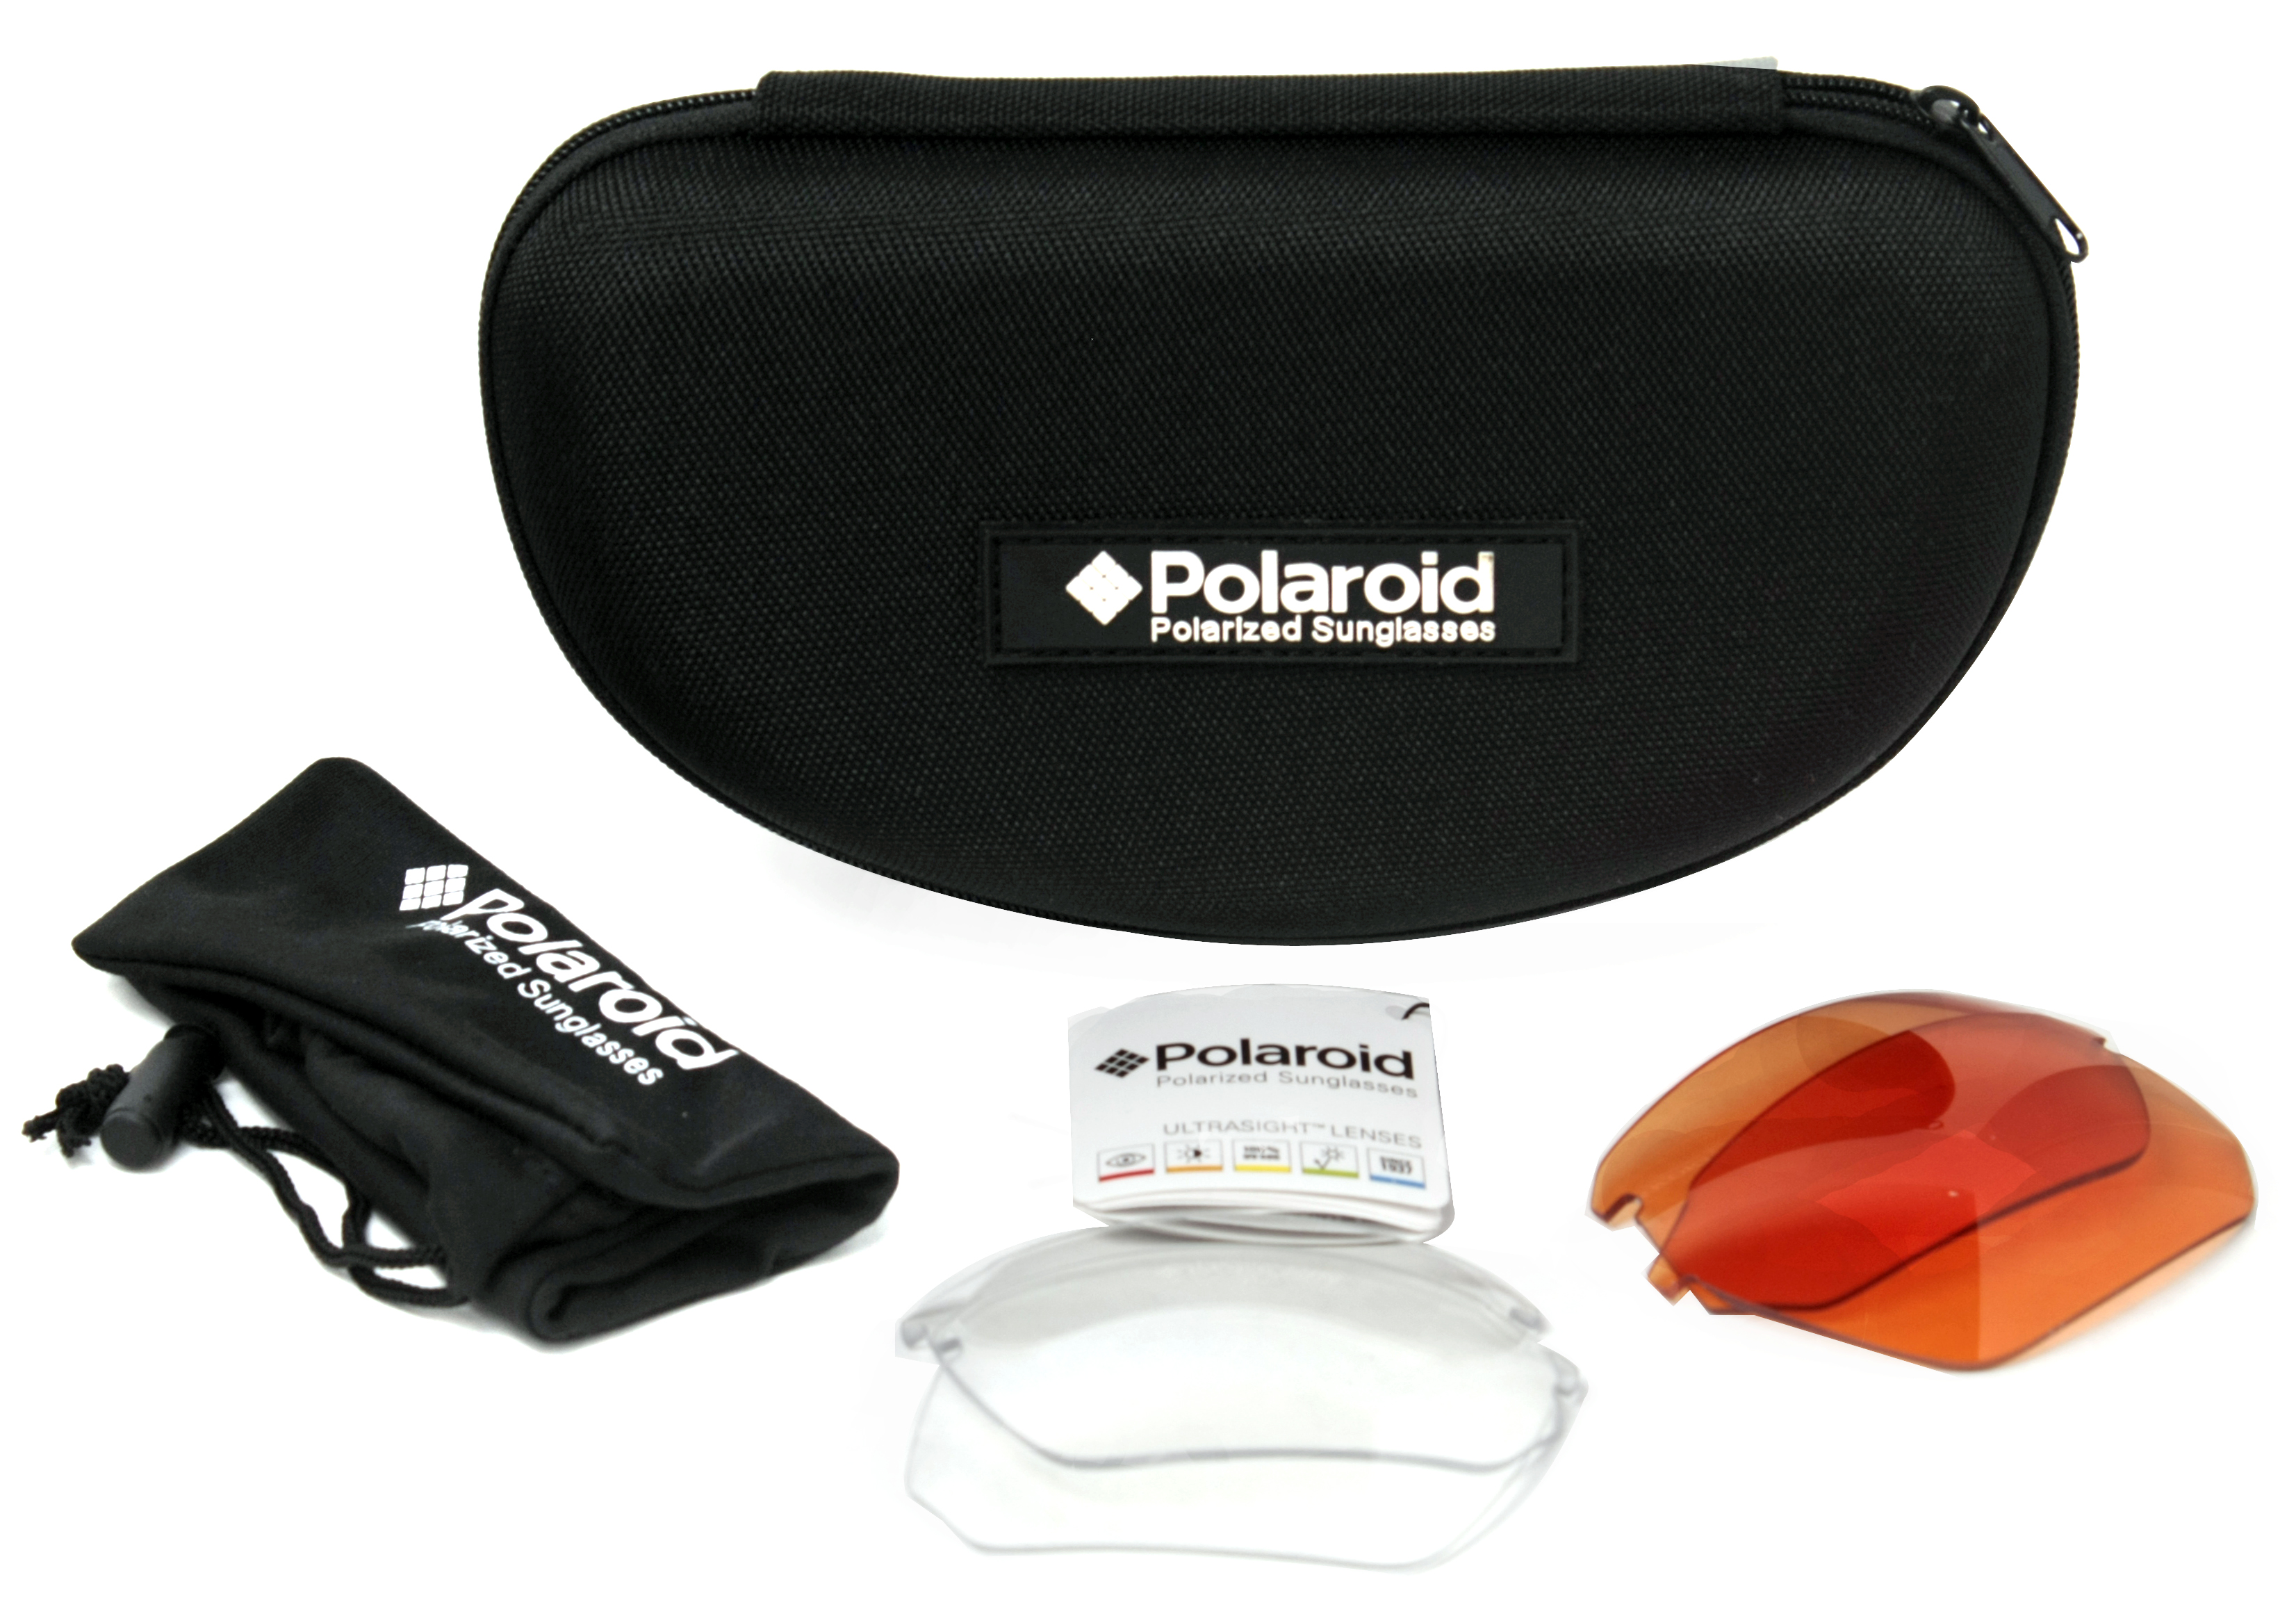 sports sunglasses with interchangeable lenses  Polaroid 7422/s Men\u0027s Polarized Sports Sunglasses w ...